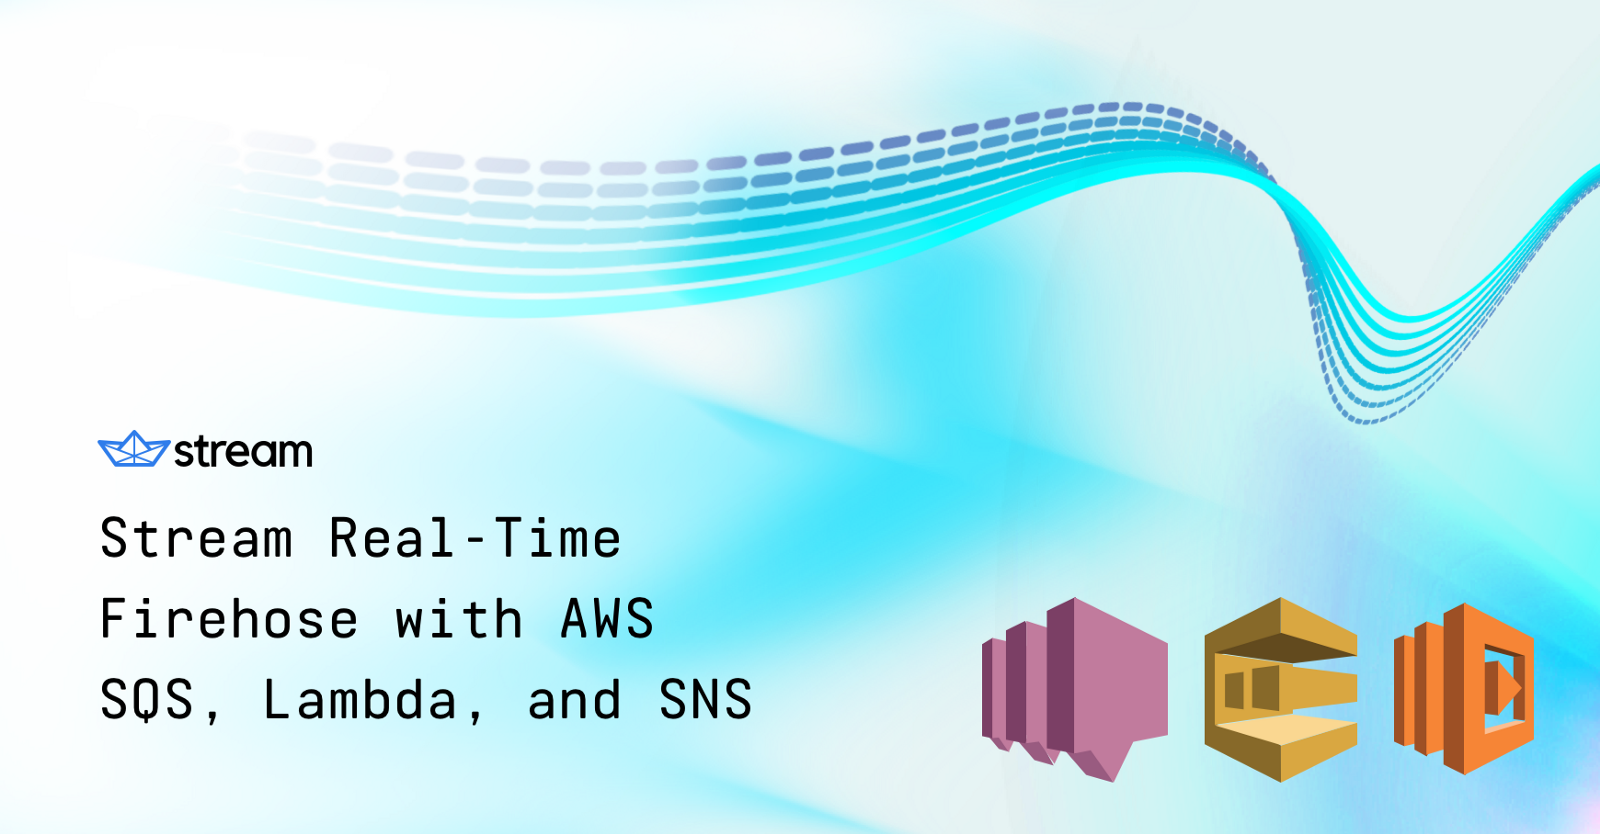 /using-the-stream-real-time-firehose-with-aws-sqs-lambda-and-sns-25bbefef198a feature image